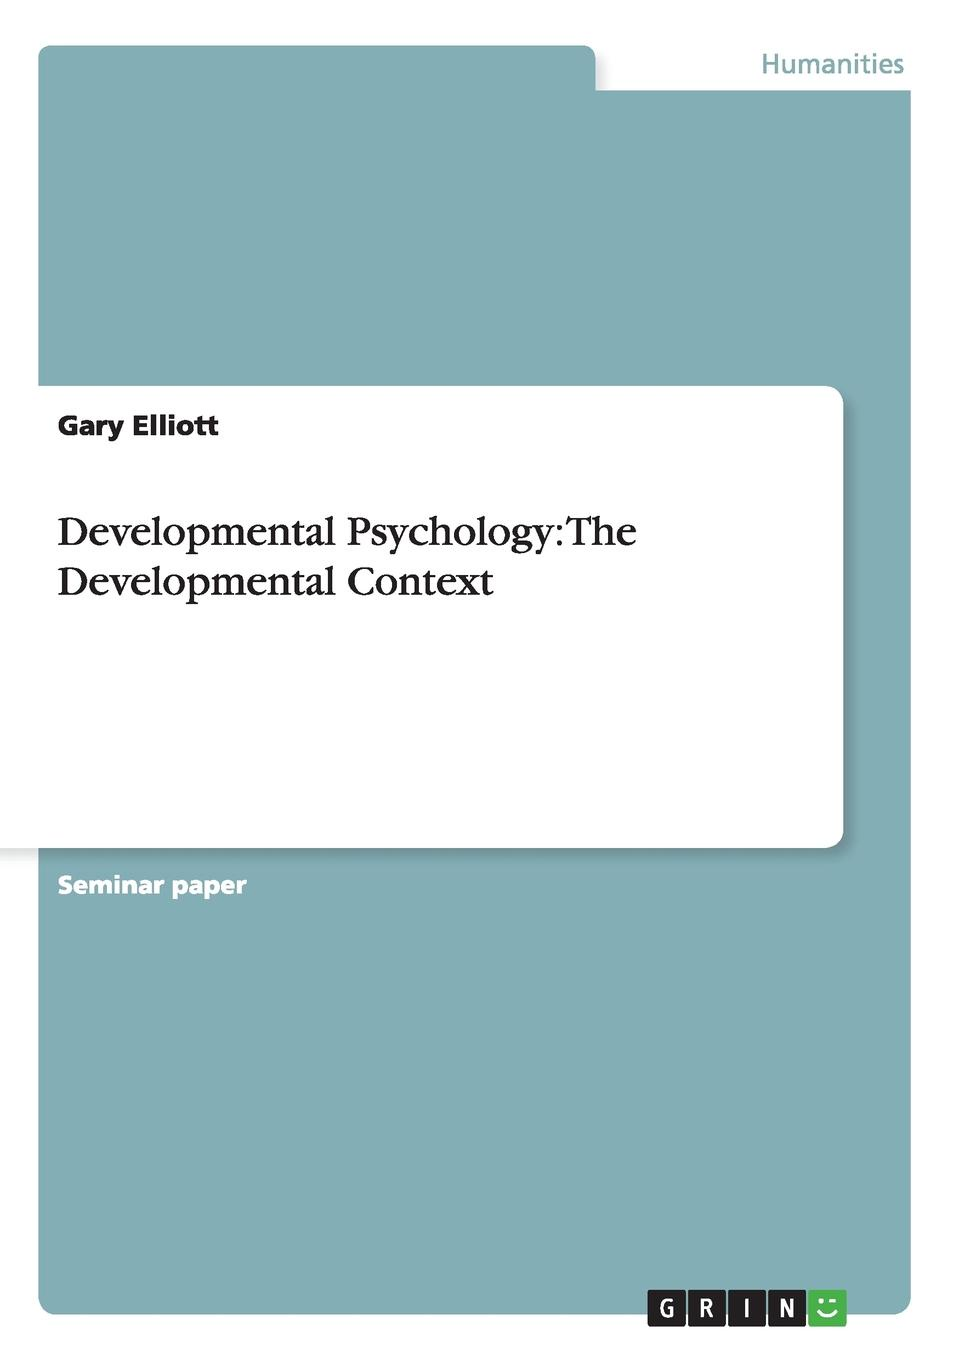 Gary Elliott Developmental Psychology. The Developmental Context sidney lanier shakespeare and his forerunners studies in elizabethan poetry and its development from early english